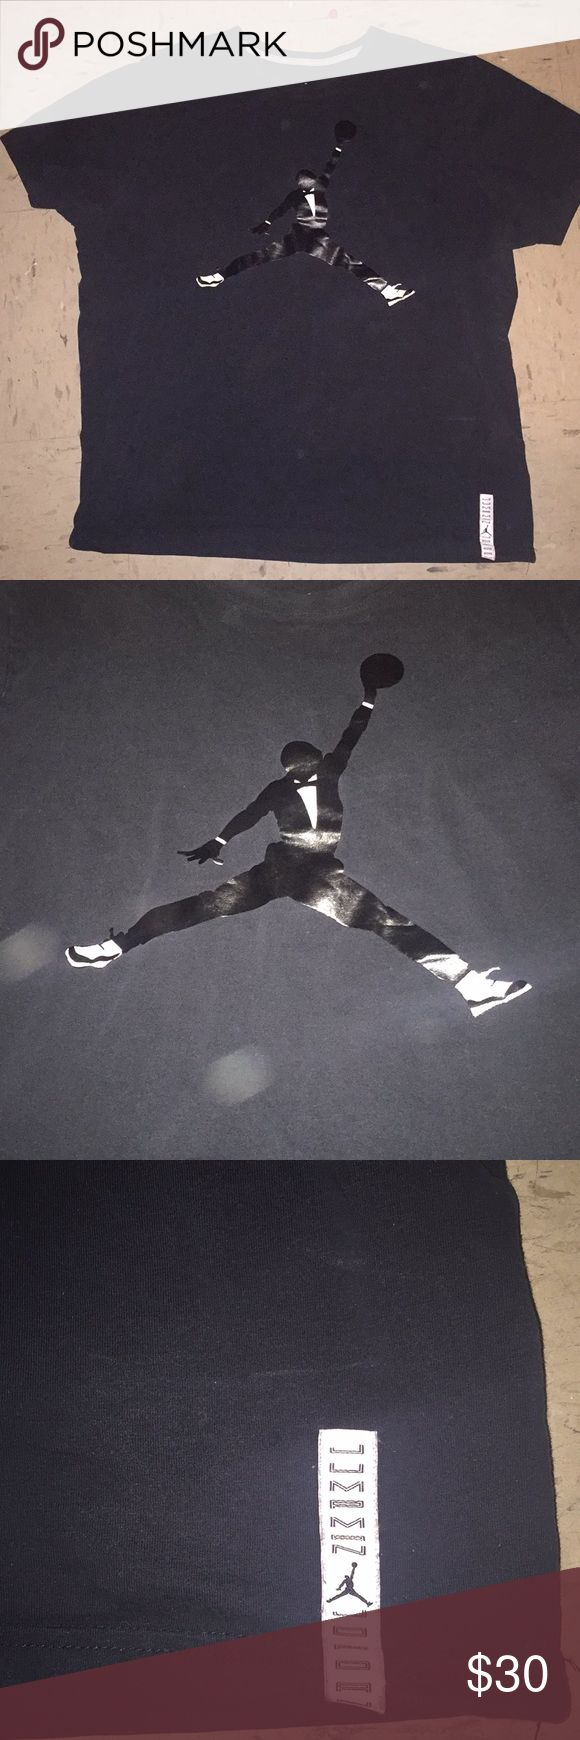 jordan logo tee a black t-shirt with the best to ever play basketball in michael jordan in his famous pose for the jordan brand logo. hes wearing a suit and the 11s on. size is XL. if u have them space jam 11s then this shirt is a perfect match. buy now or best offer..... Jordan Shirts Tees - Short Sleeve